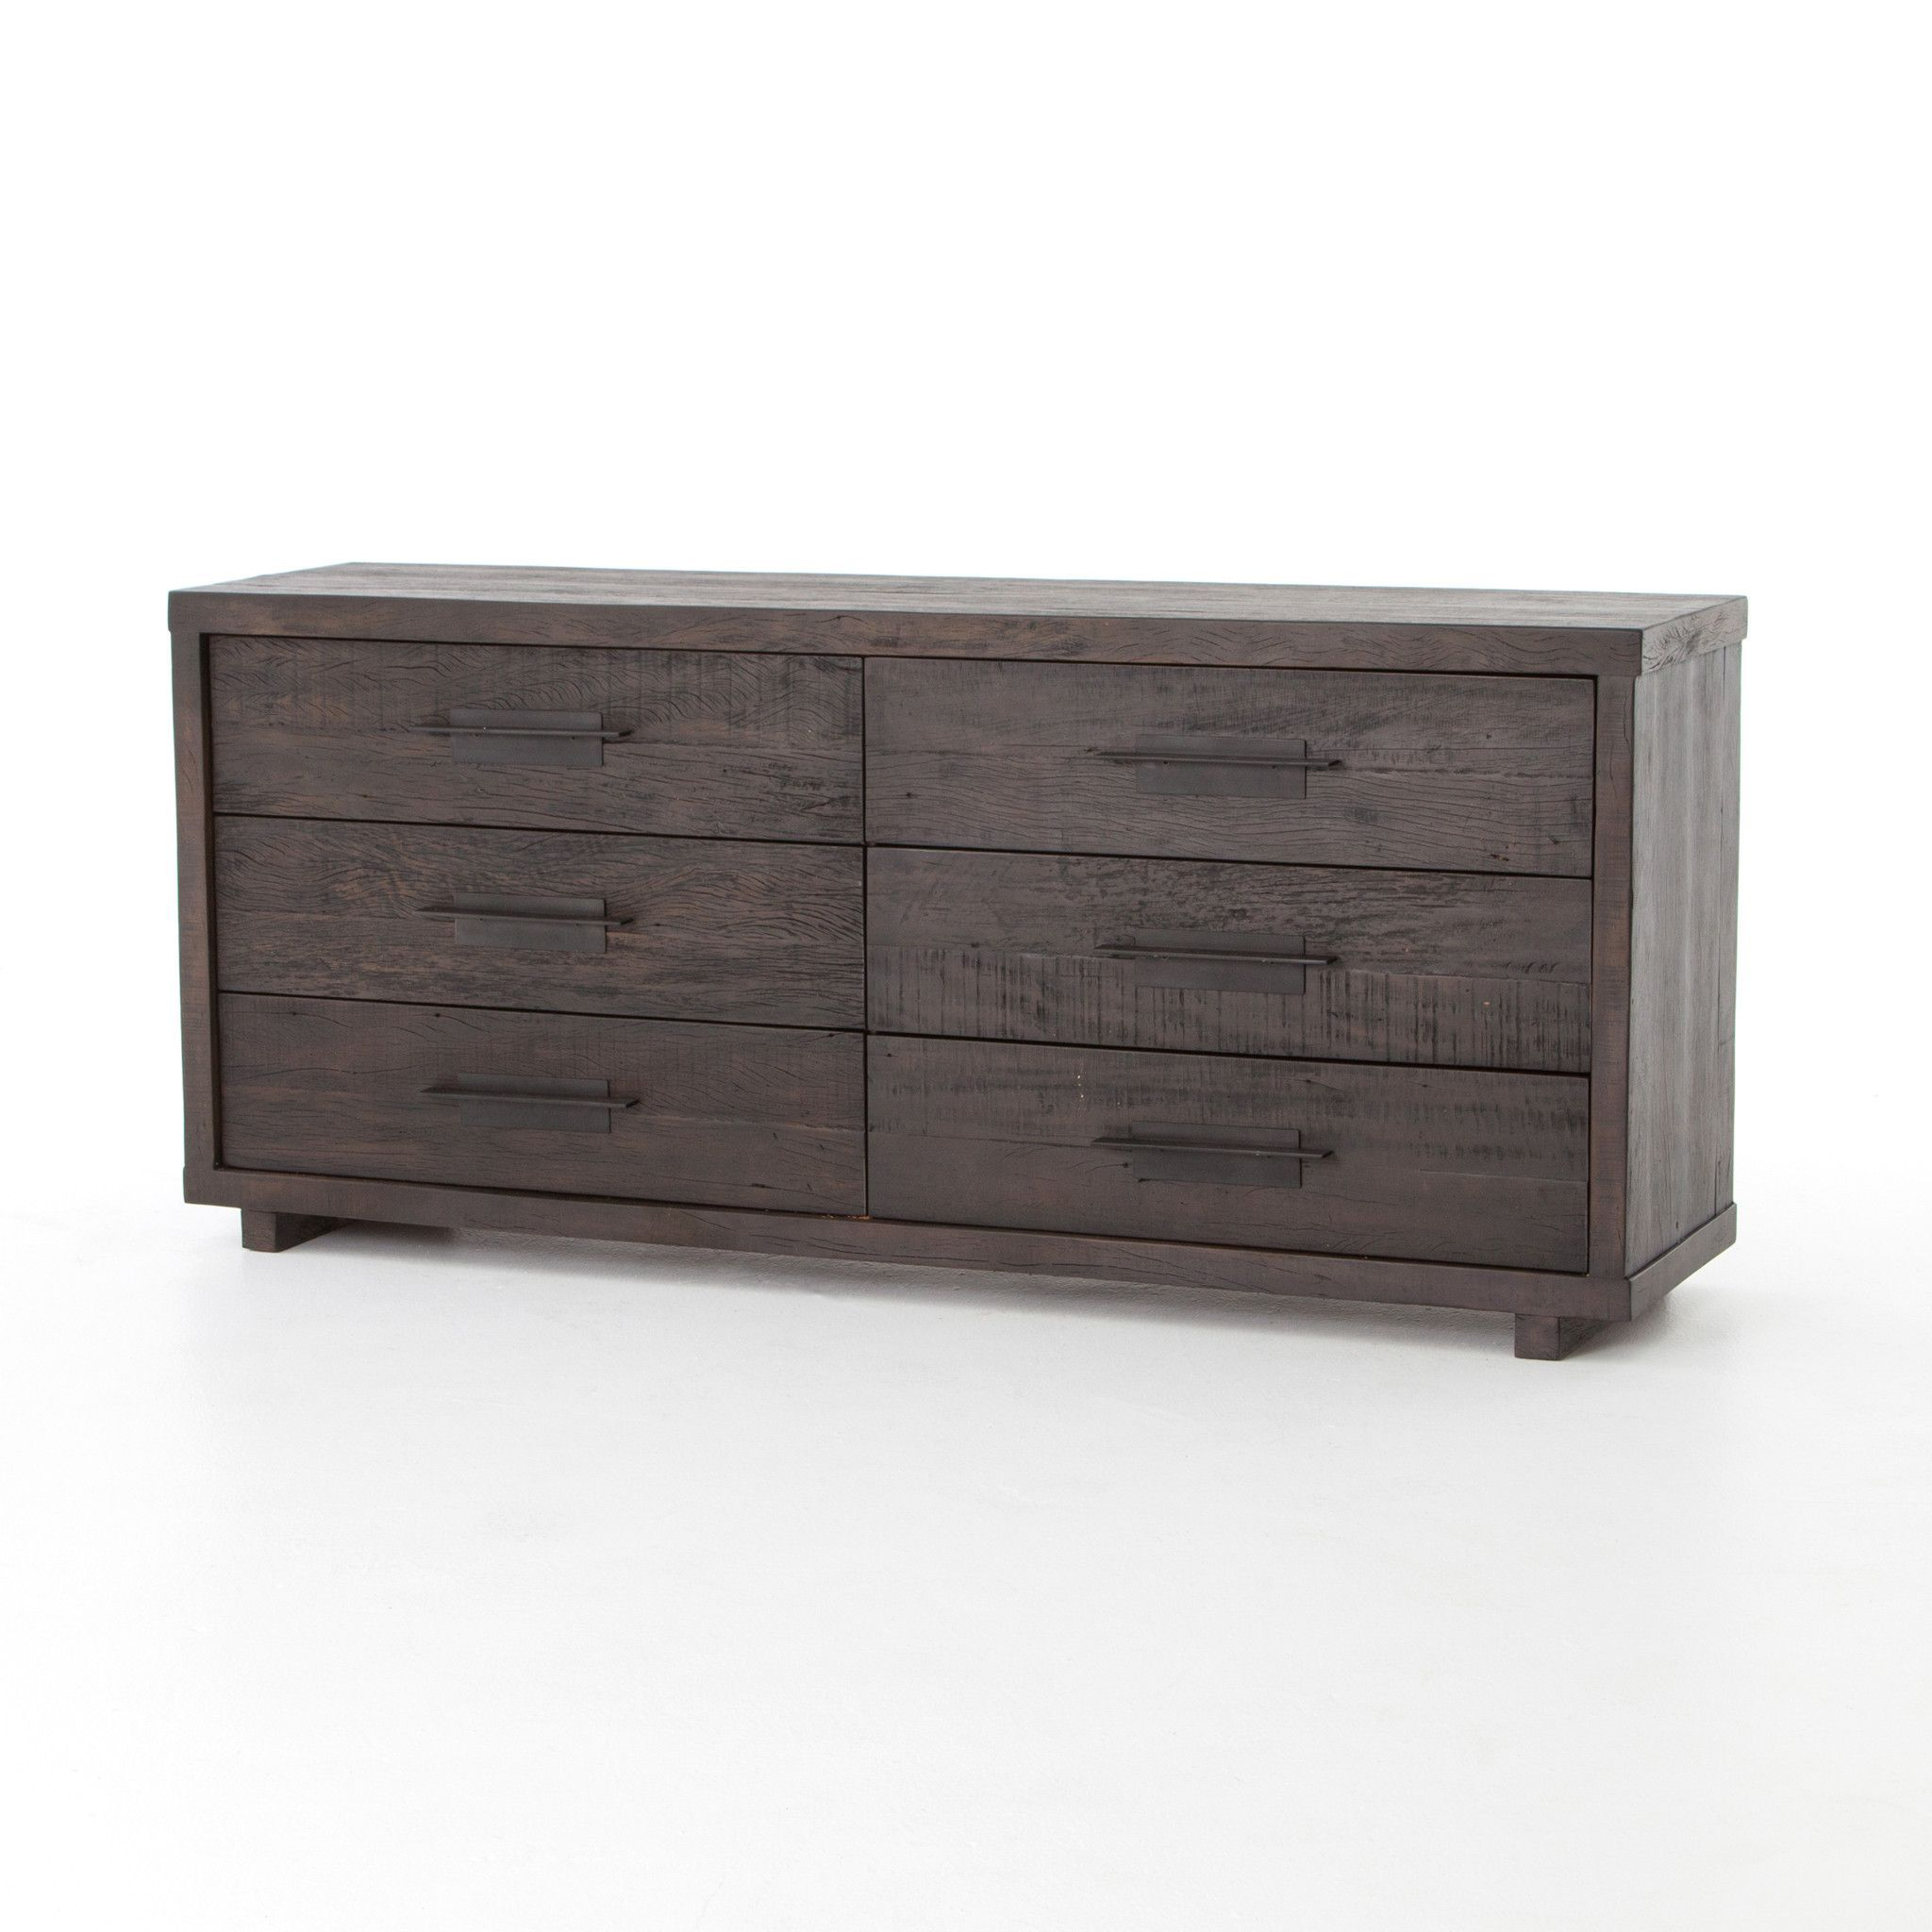 CALDWELL 6 DRAWER DRESSER | NEW